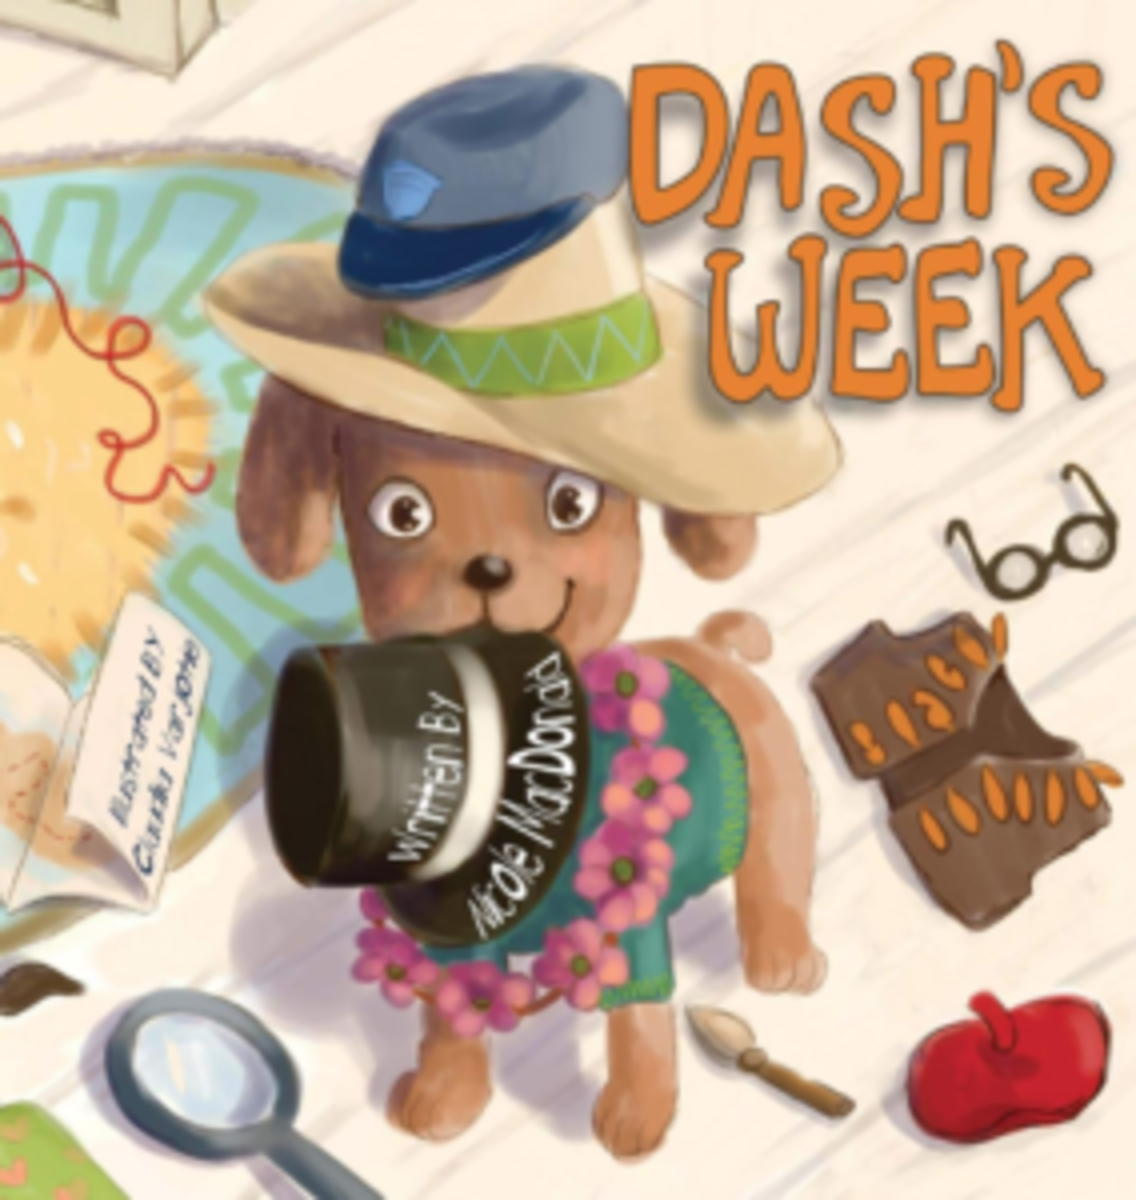 Dash's Week by Nicole MacDonald